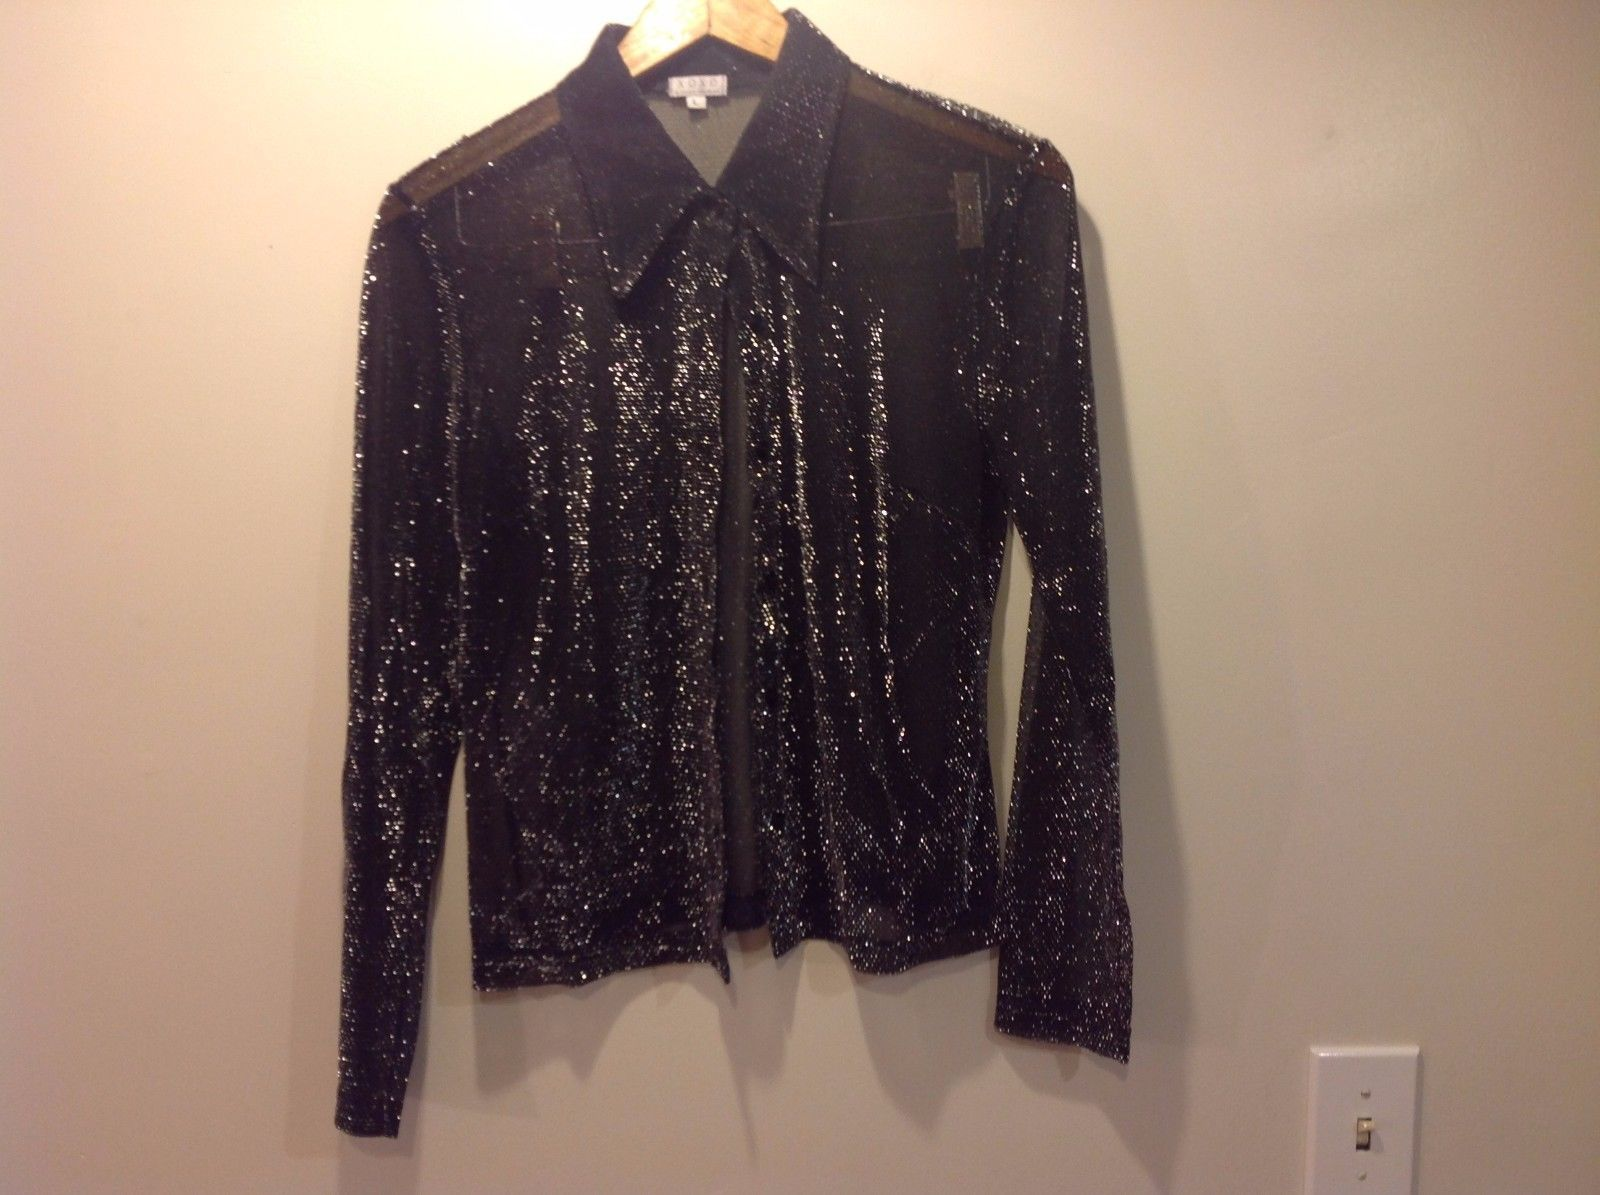 Metallic See Through Black Long Sleeve Shirt XOXO Size L